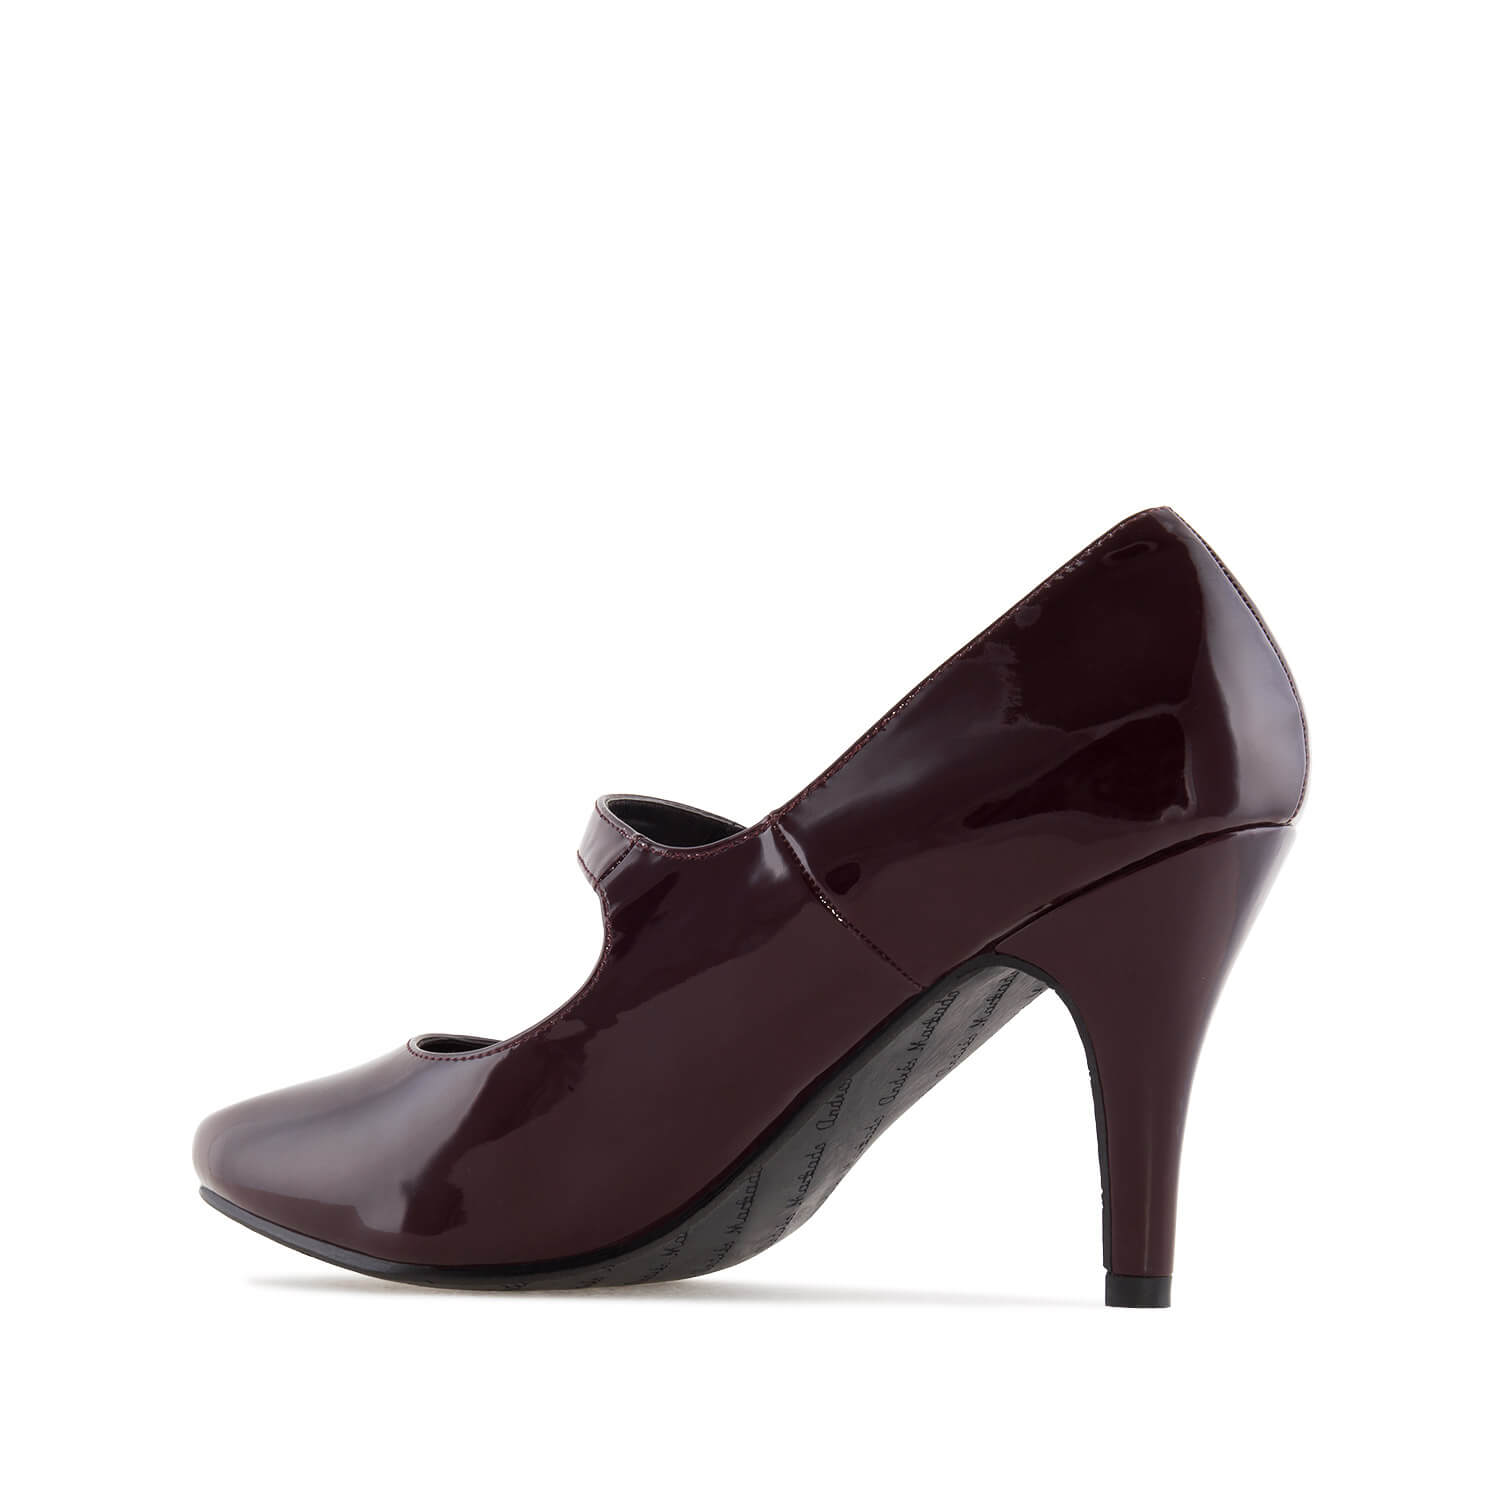 Mary Jane Heeled Shoes in Burgundy Patent